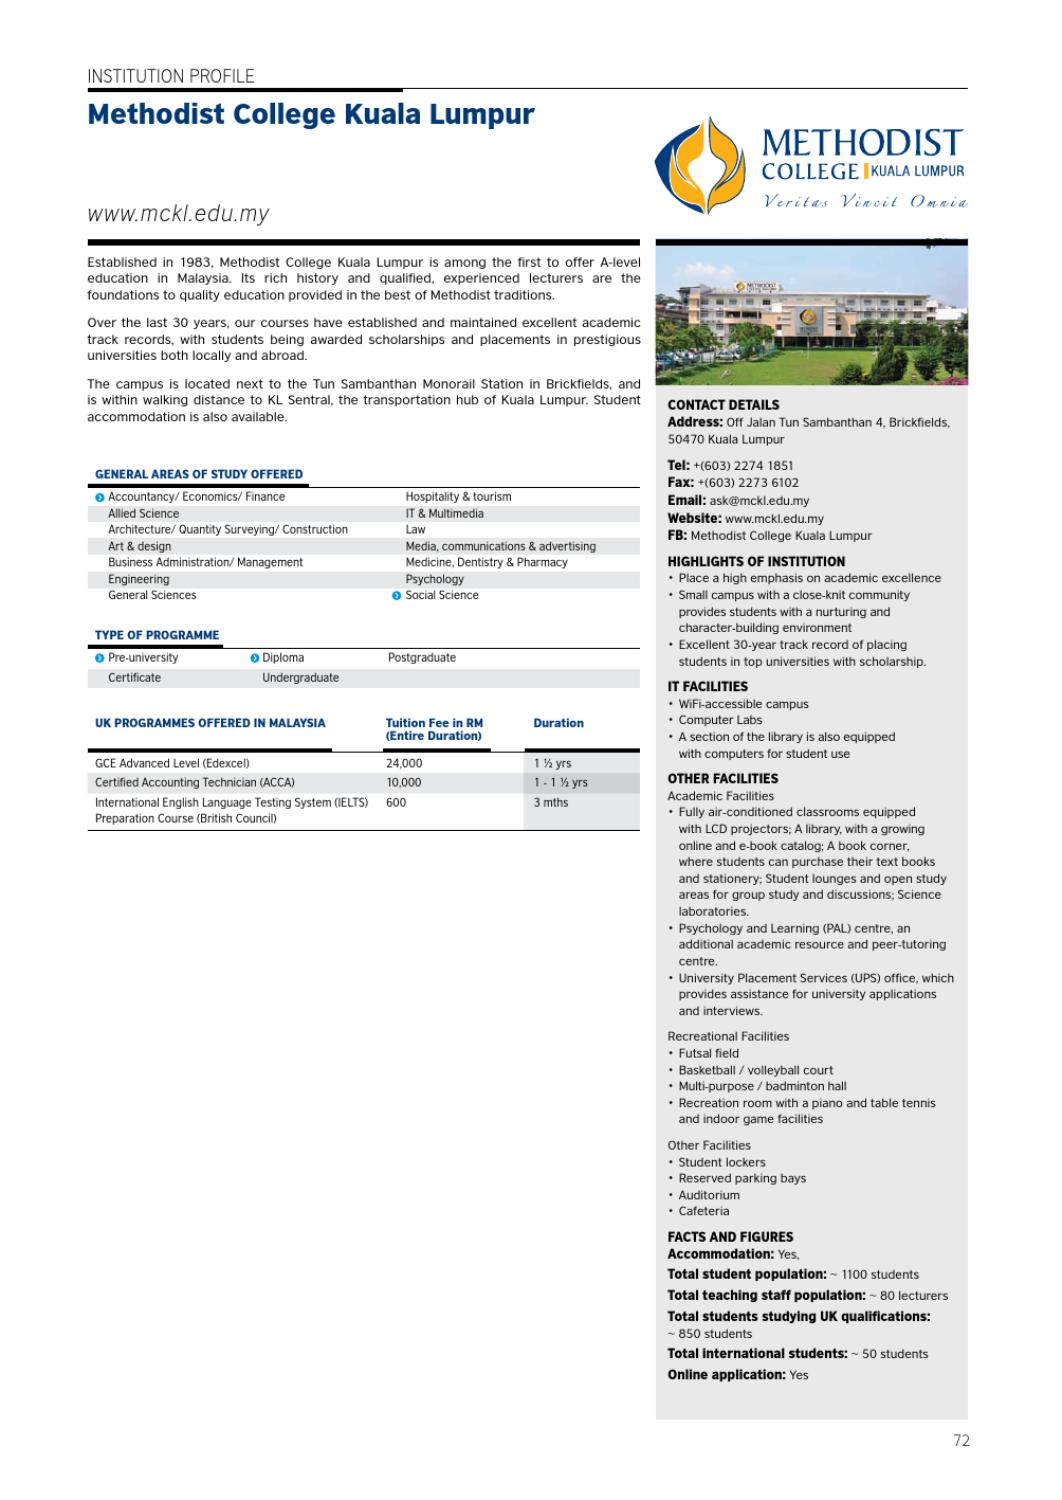 The Guide to UK Qualifications in Malaysia 2013/14 by